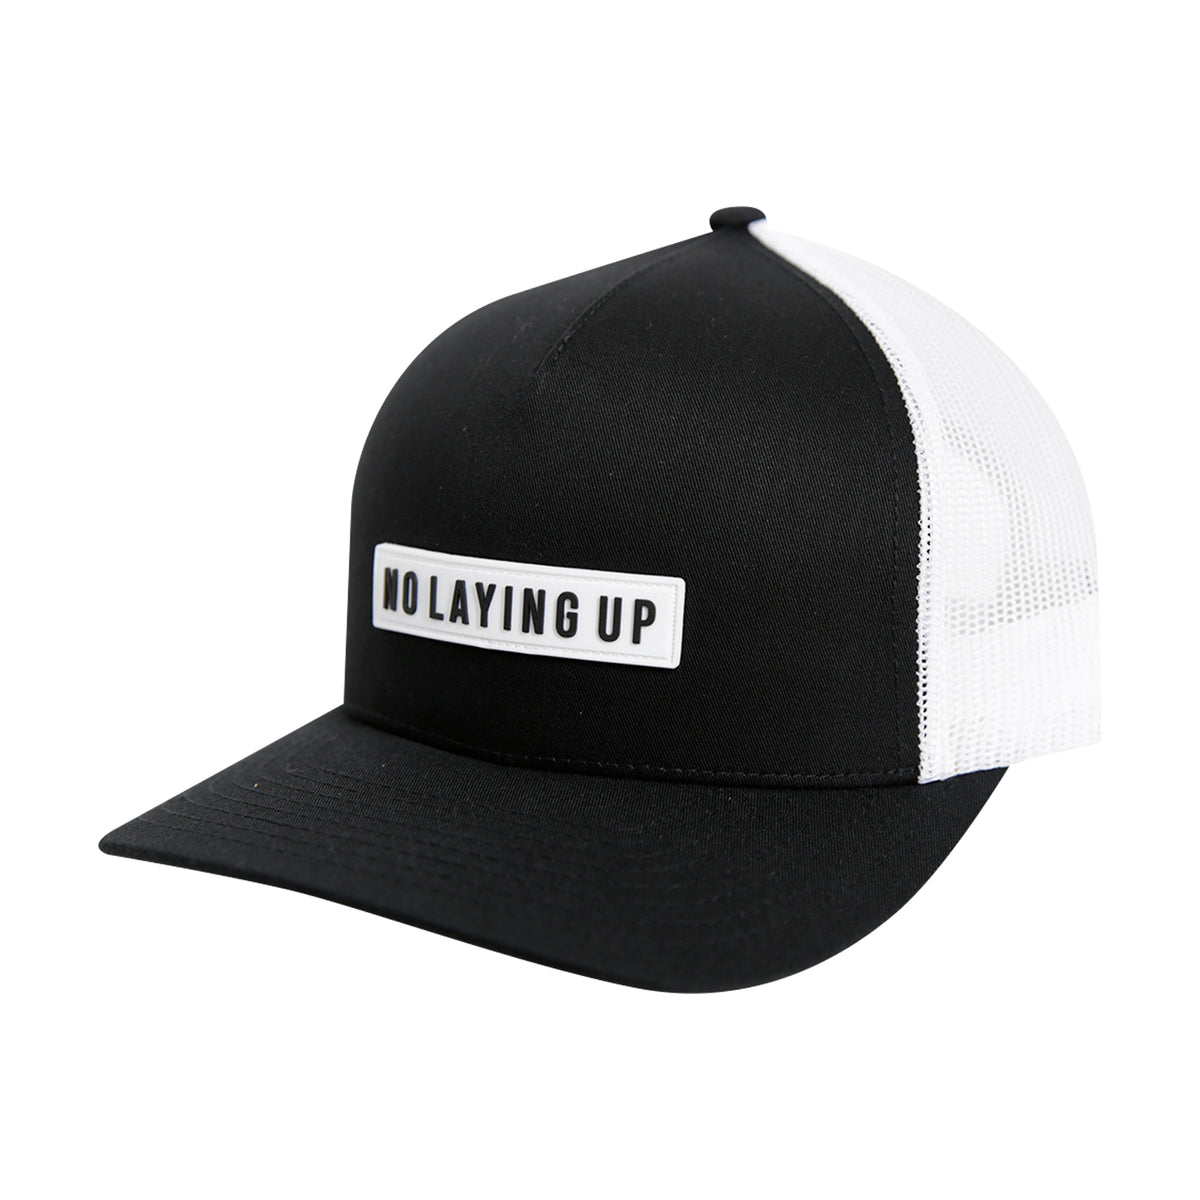 NLU White Patch Hat | Black & White Mesh